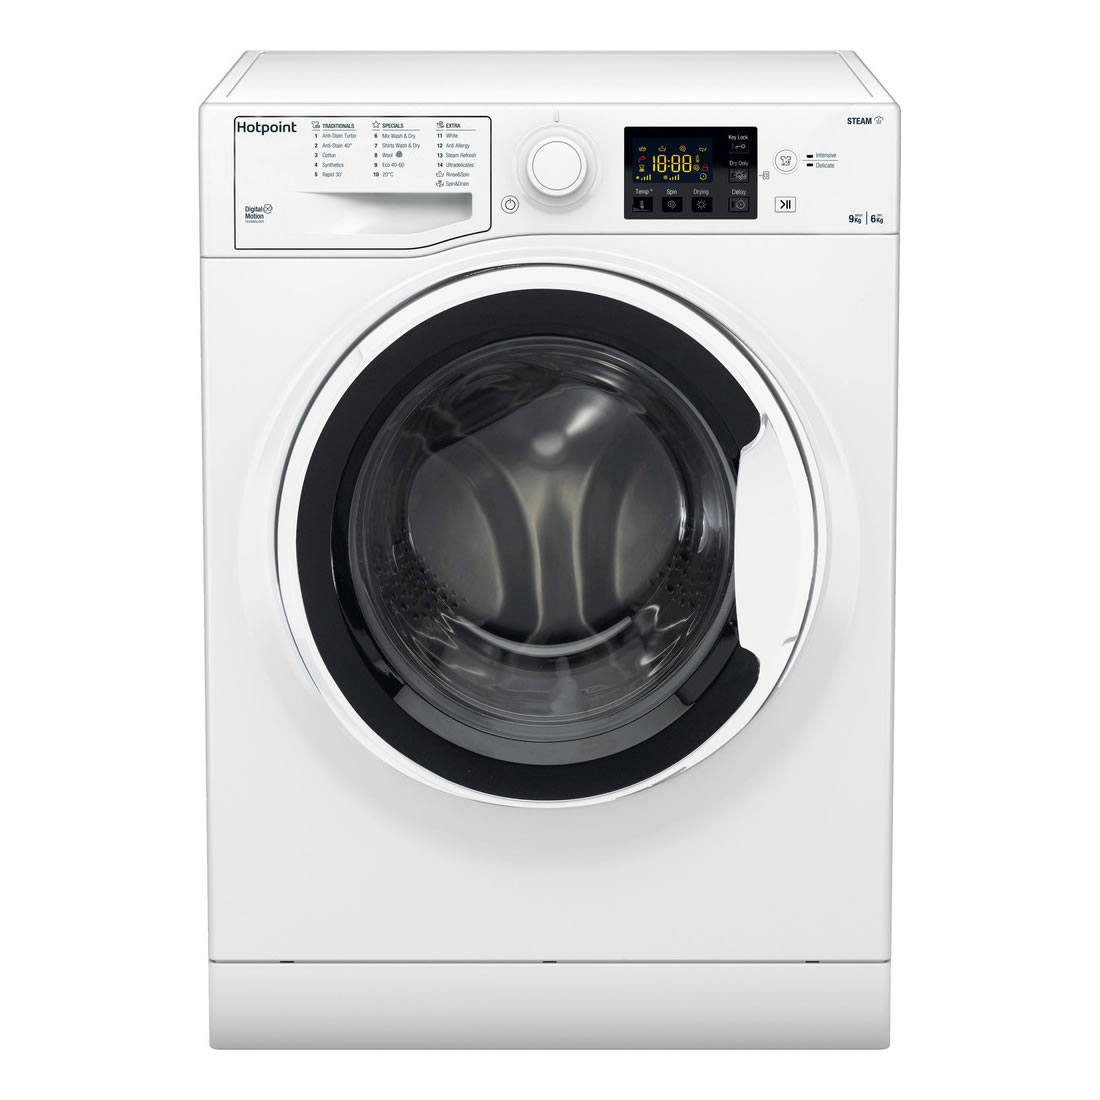 Image of Hotpoint RDG9643W